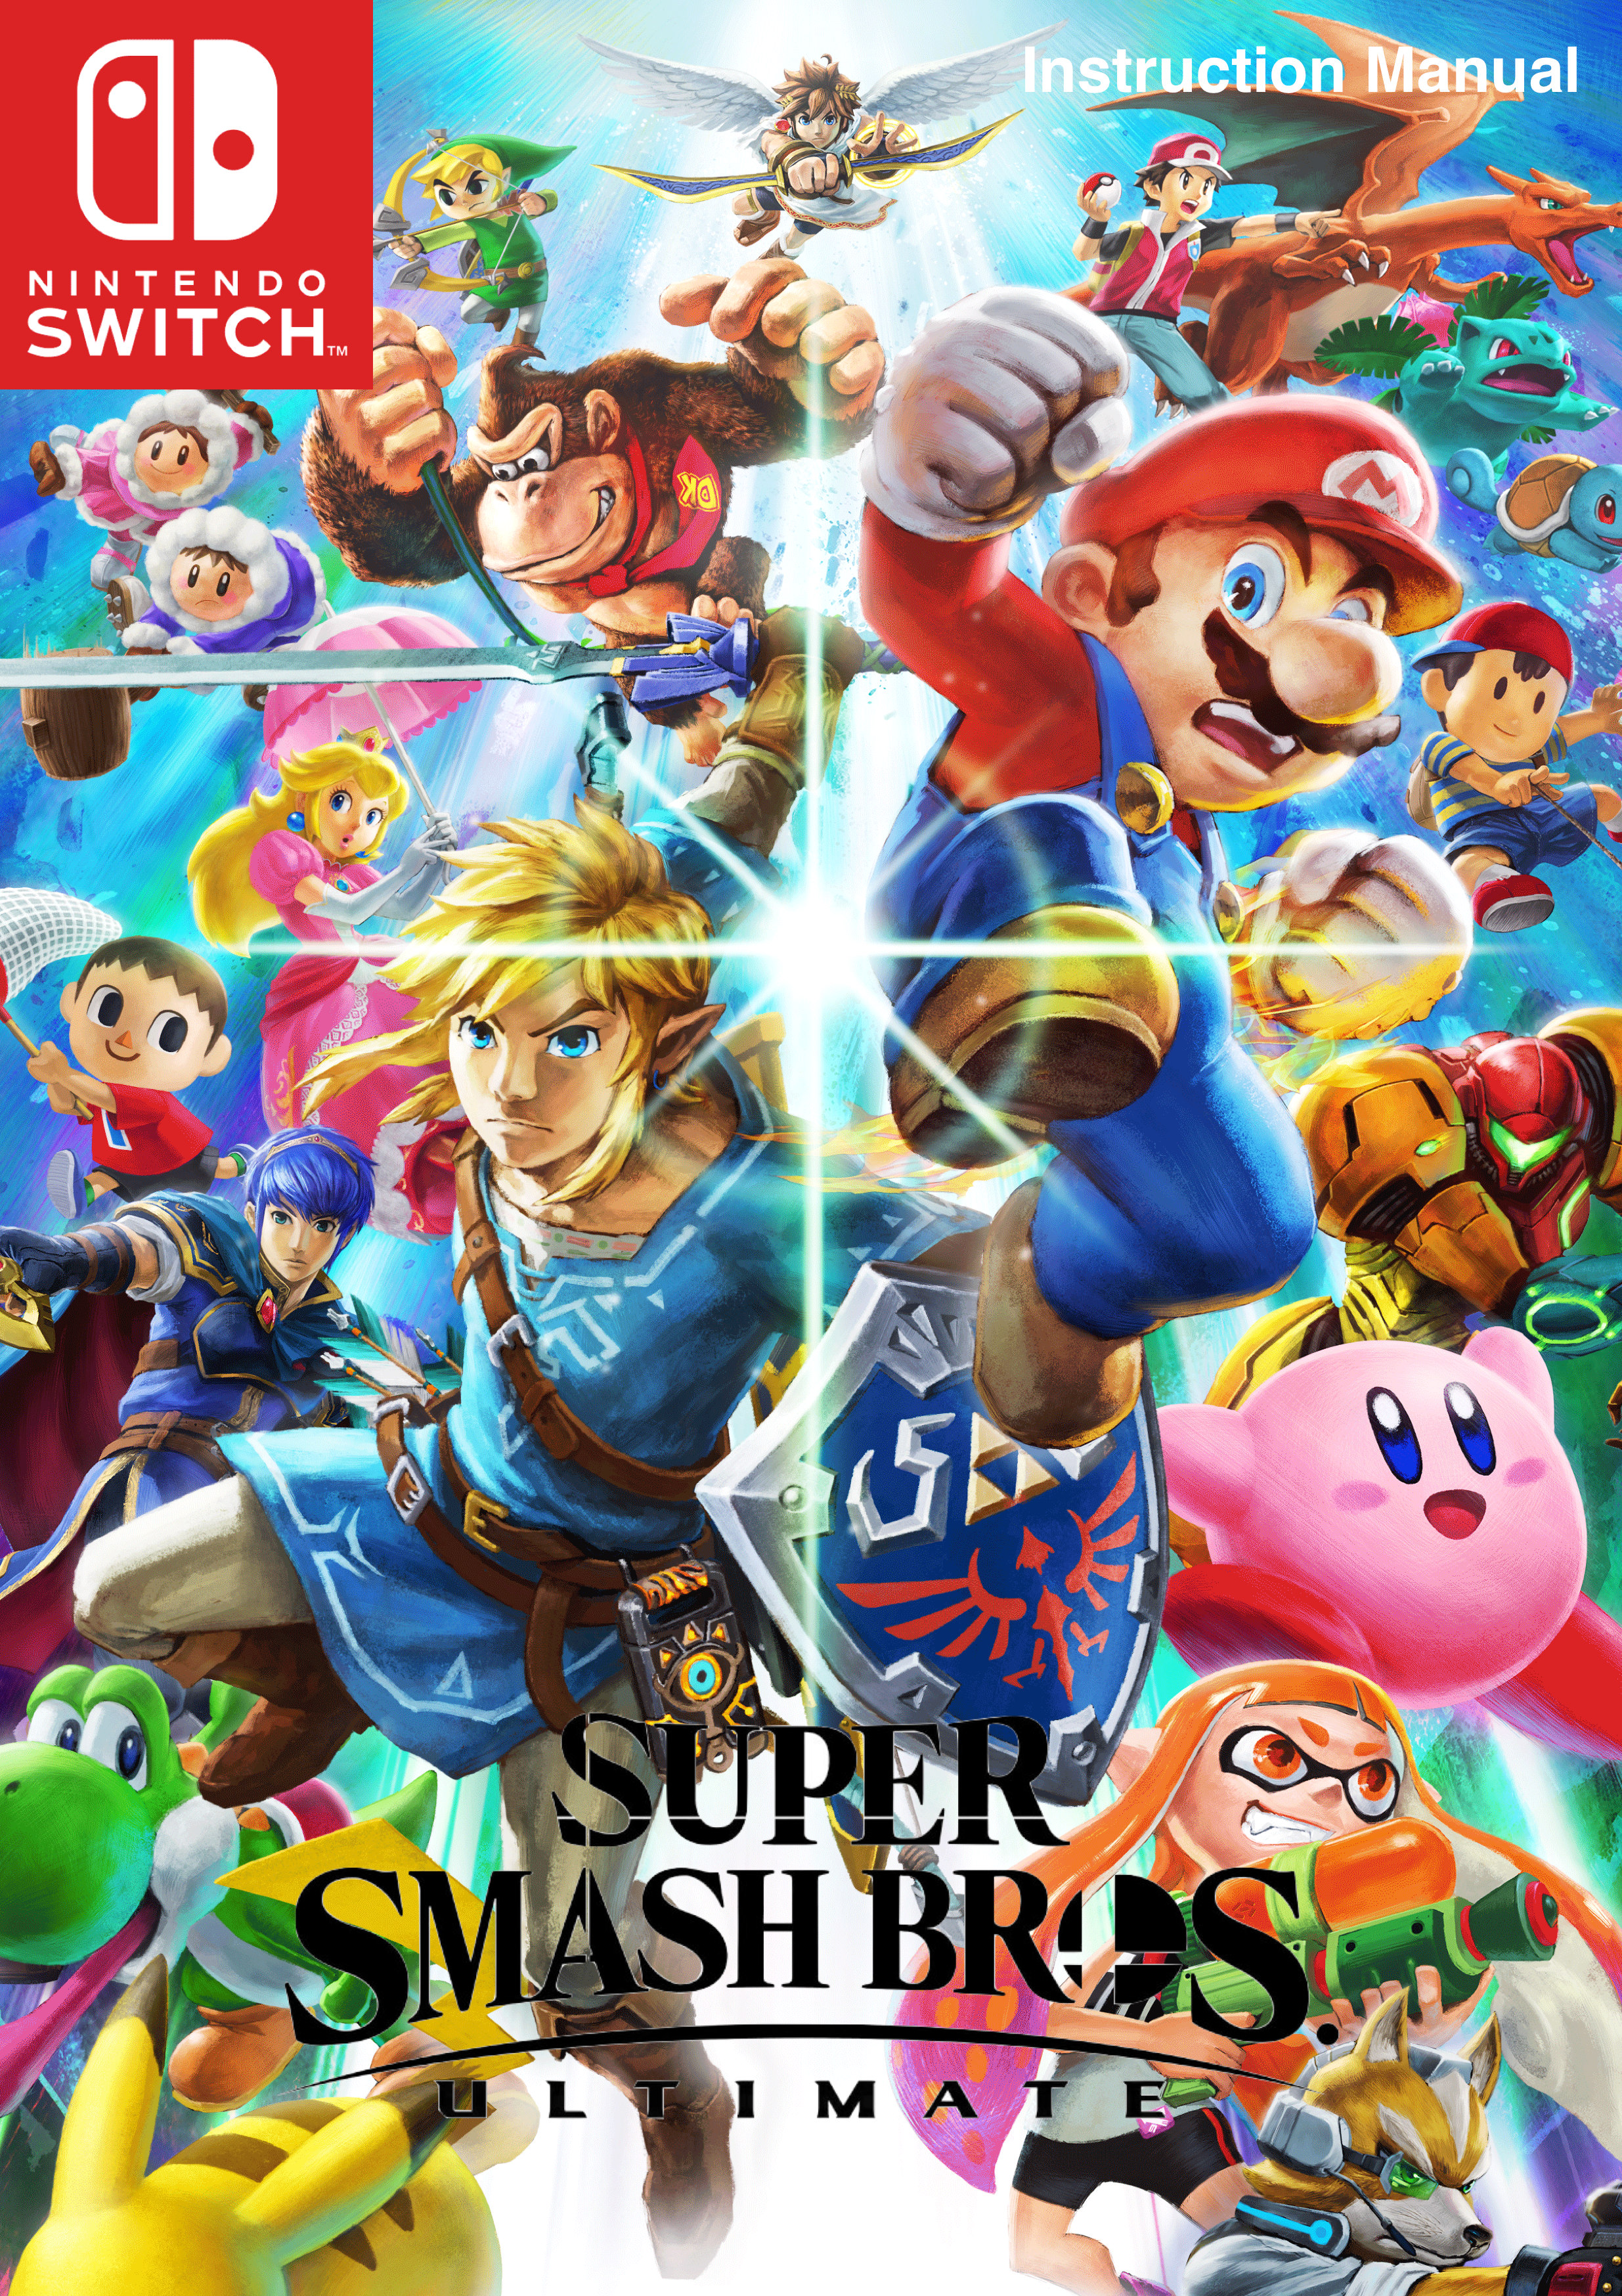 Fan-made Super Smash Bros. Ultimate manual 1 out of 6 image gallery